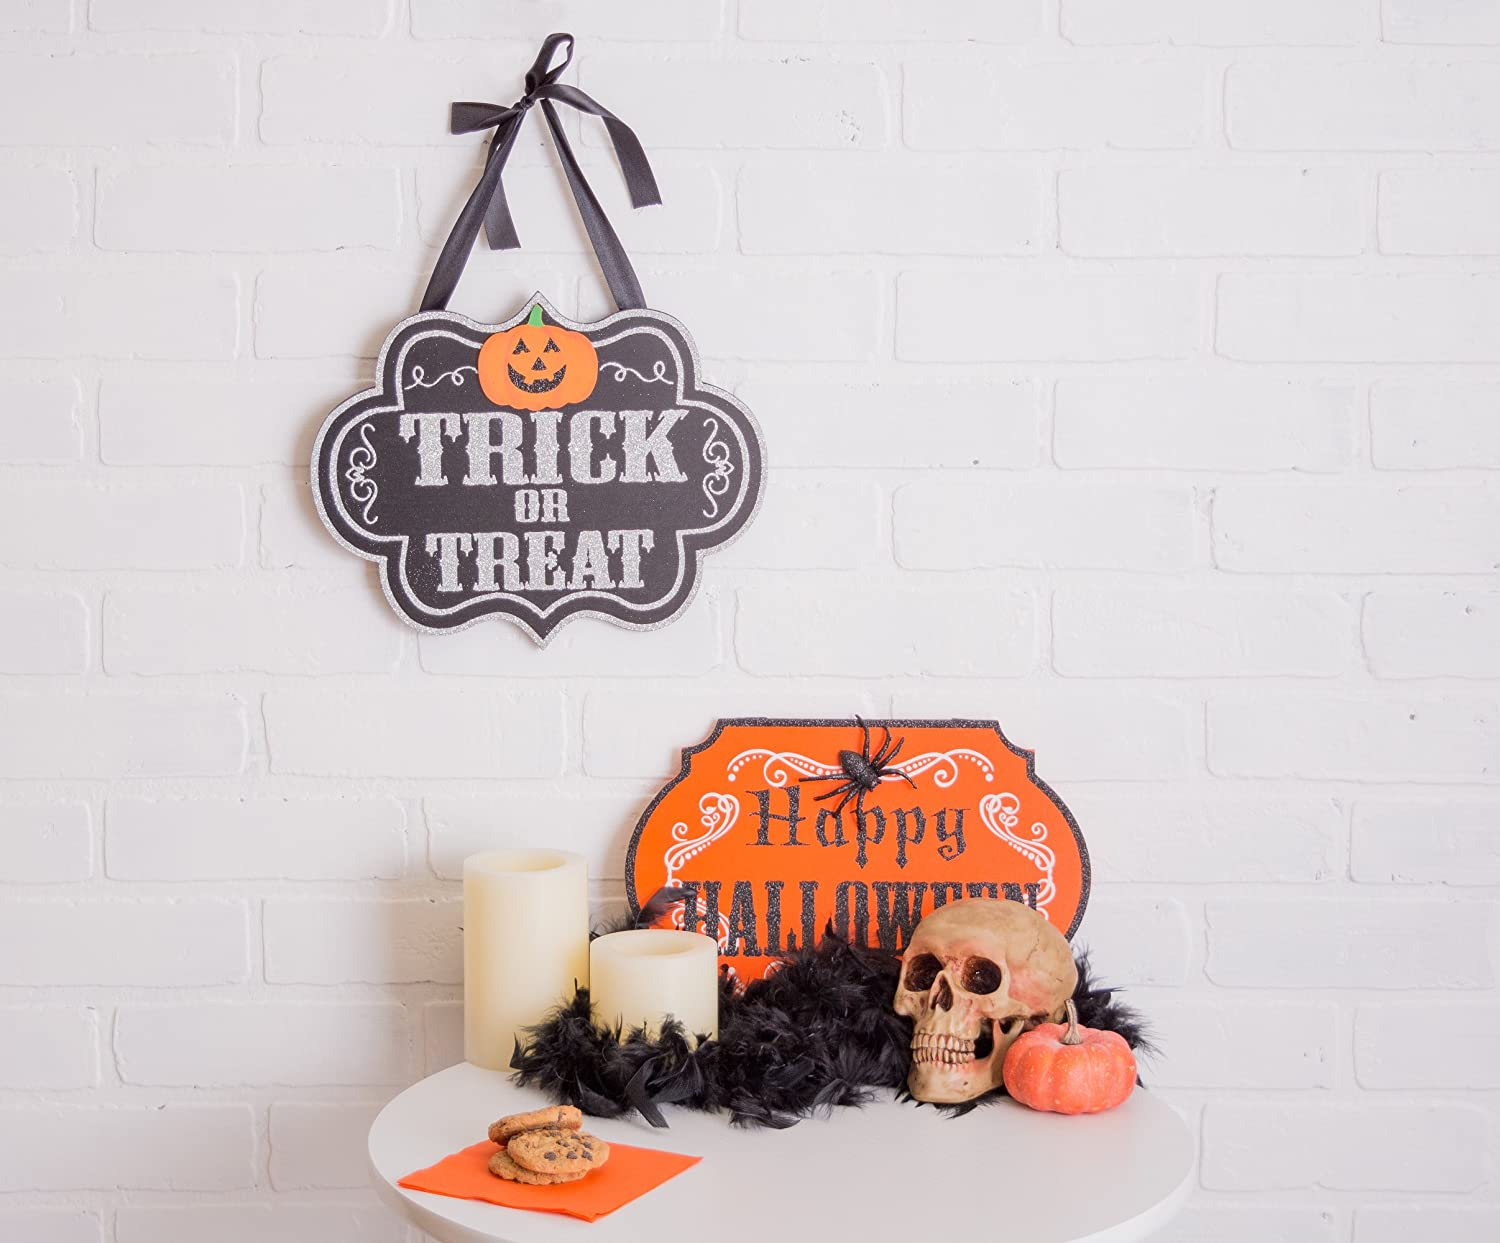 DII Indoor and Outdoor Wood Fall Halloween Hanging Door Decorations and Wall Signs Set of 2 - Trick or Treat & Happy Halloween